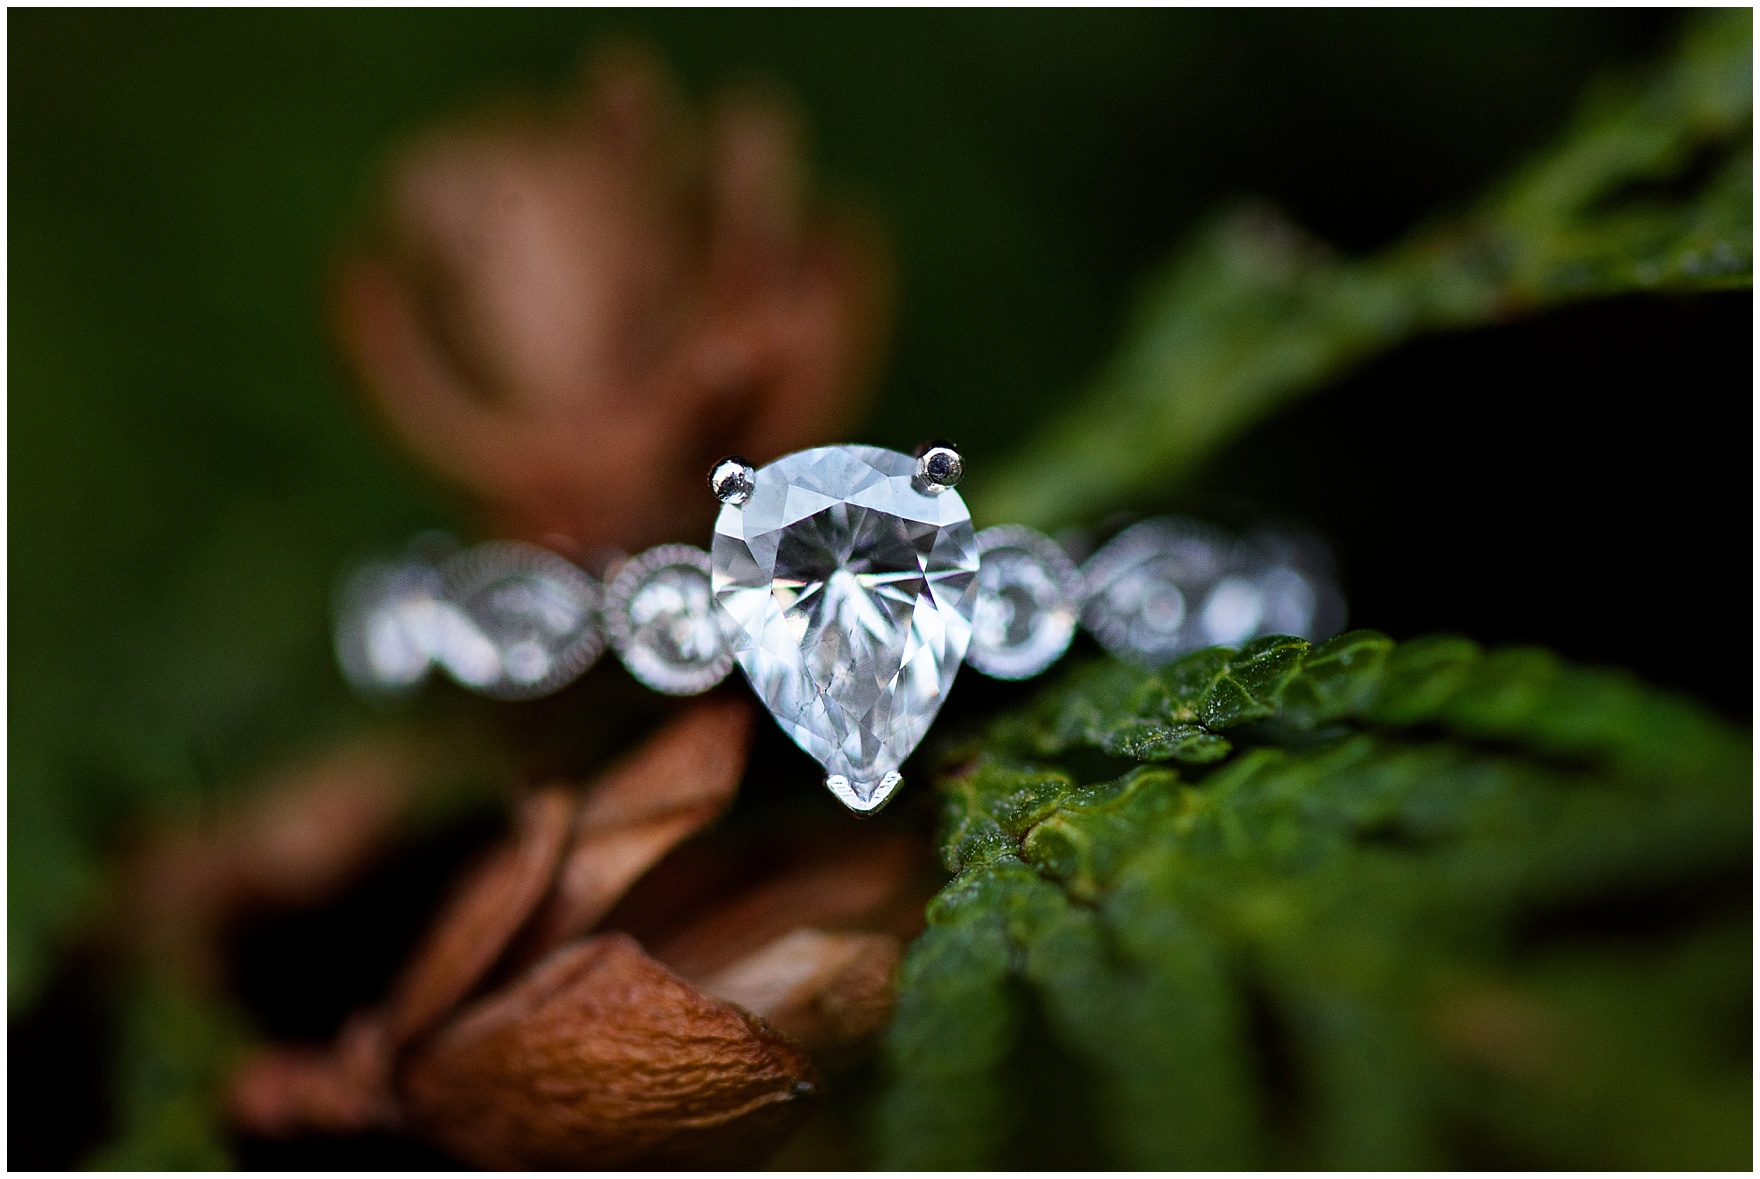 Close up photograph of a pear-shaped diamond engagement ring taken during an Art Institute of Chicago engagement photography session.